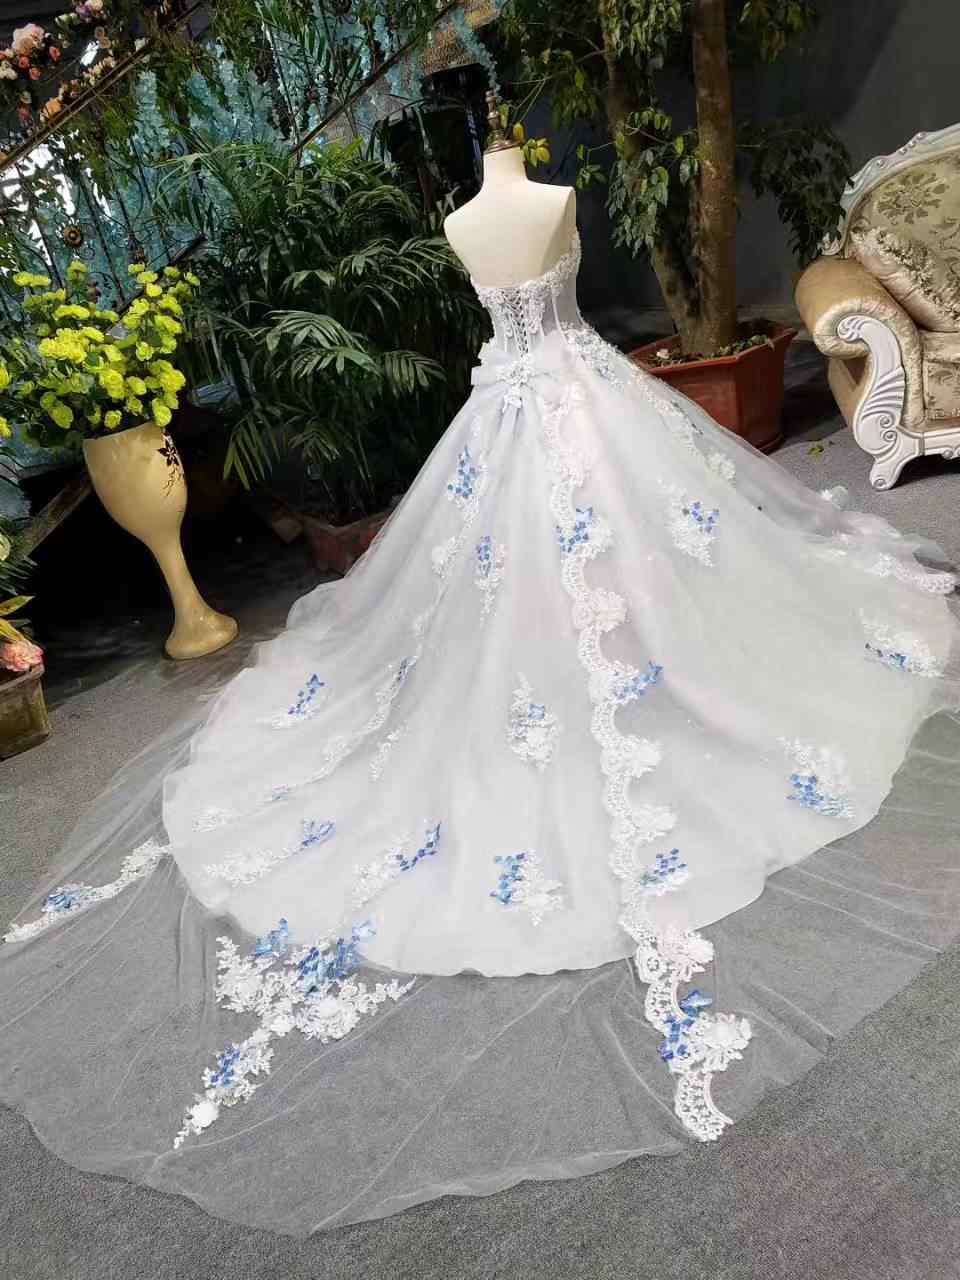 12cb576d02 2018 Spring Summer Romantic Luxury Flowers Bow Lace Appliques Glitter Tulle  Tiffany Blue Wedding Dresses White Long Train Bridal